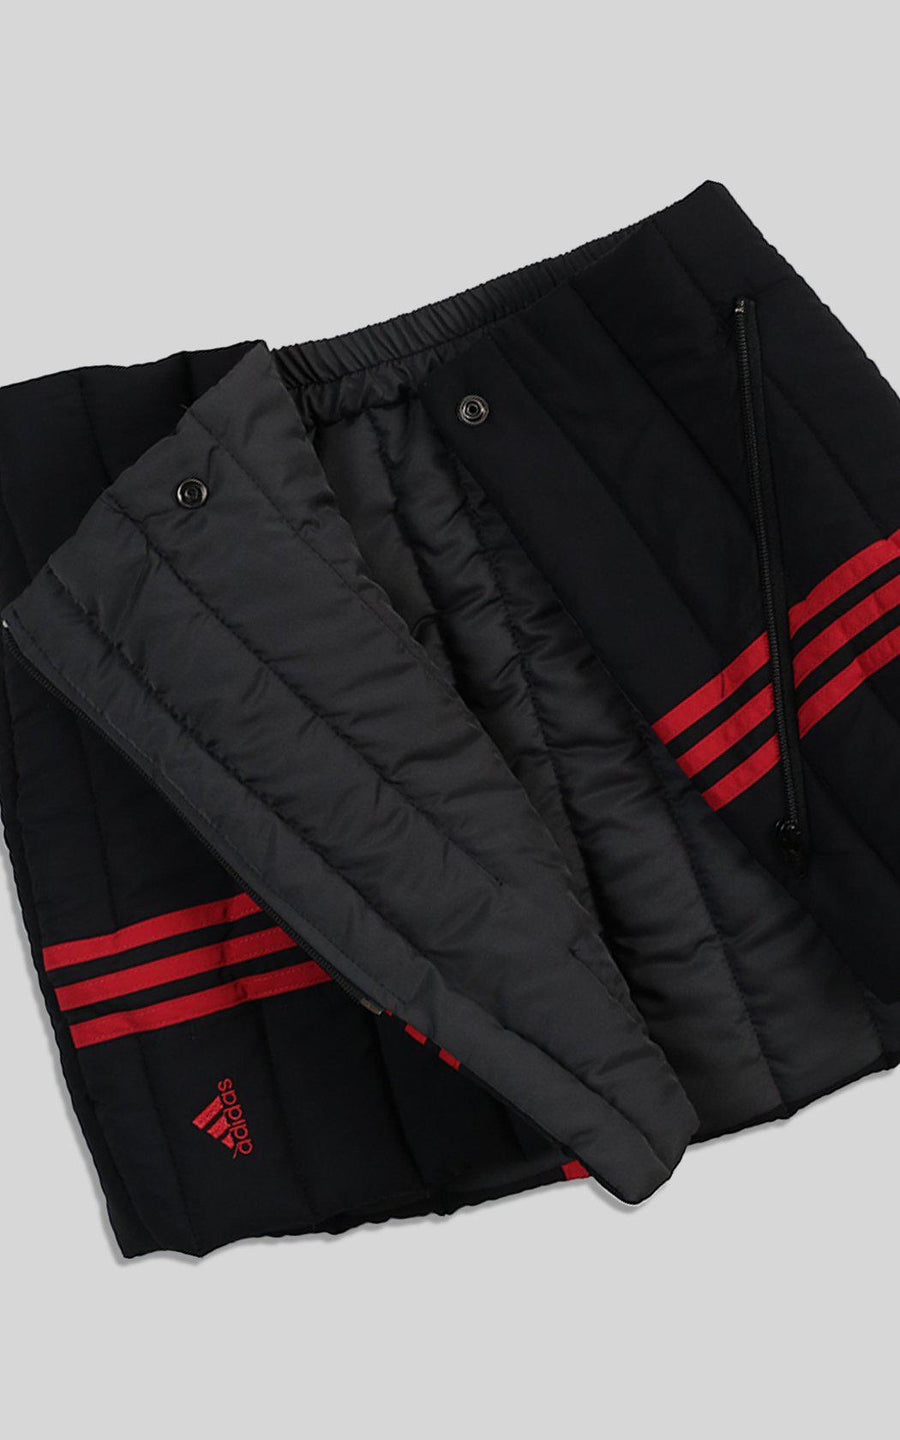 Rework Adidas Quilted Puffer Skirt - L